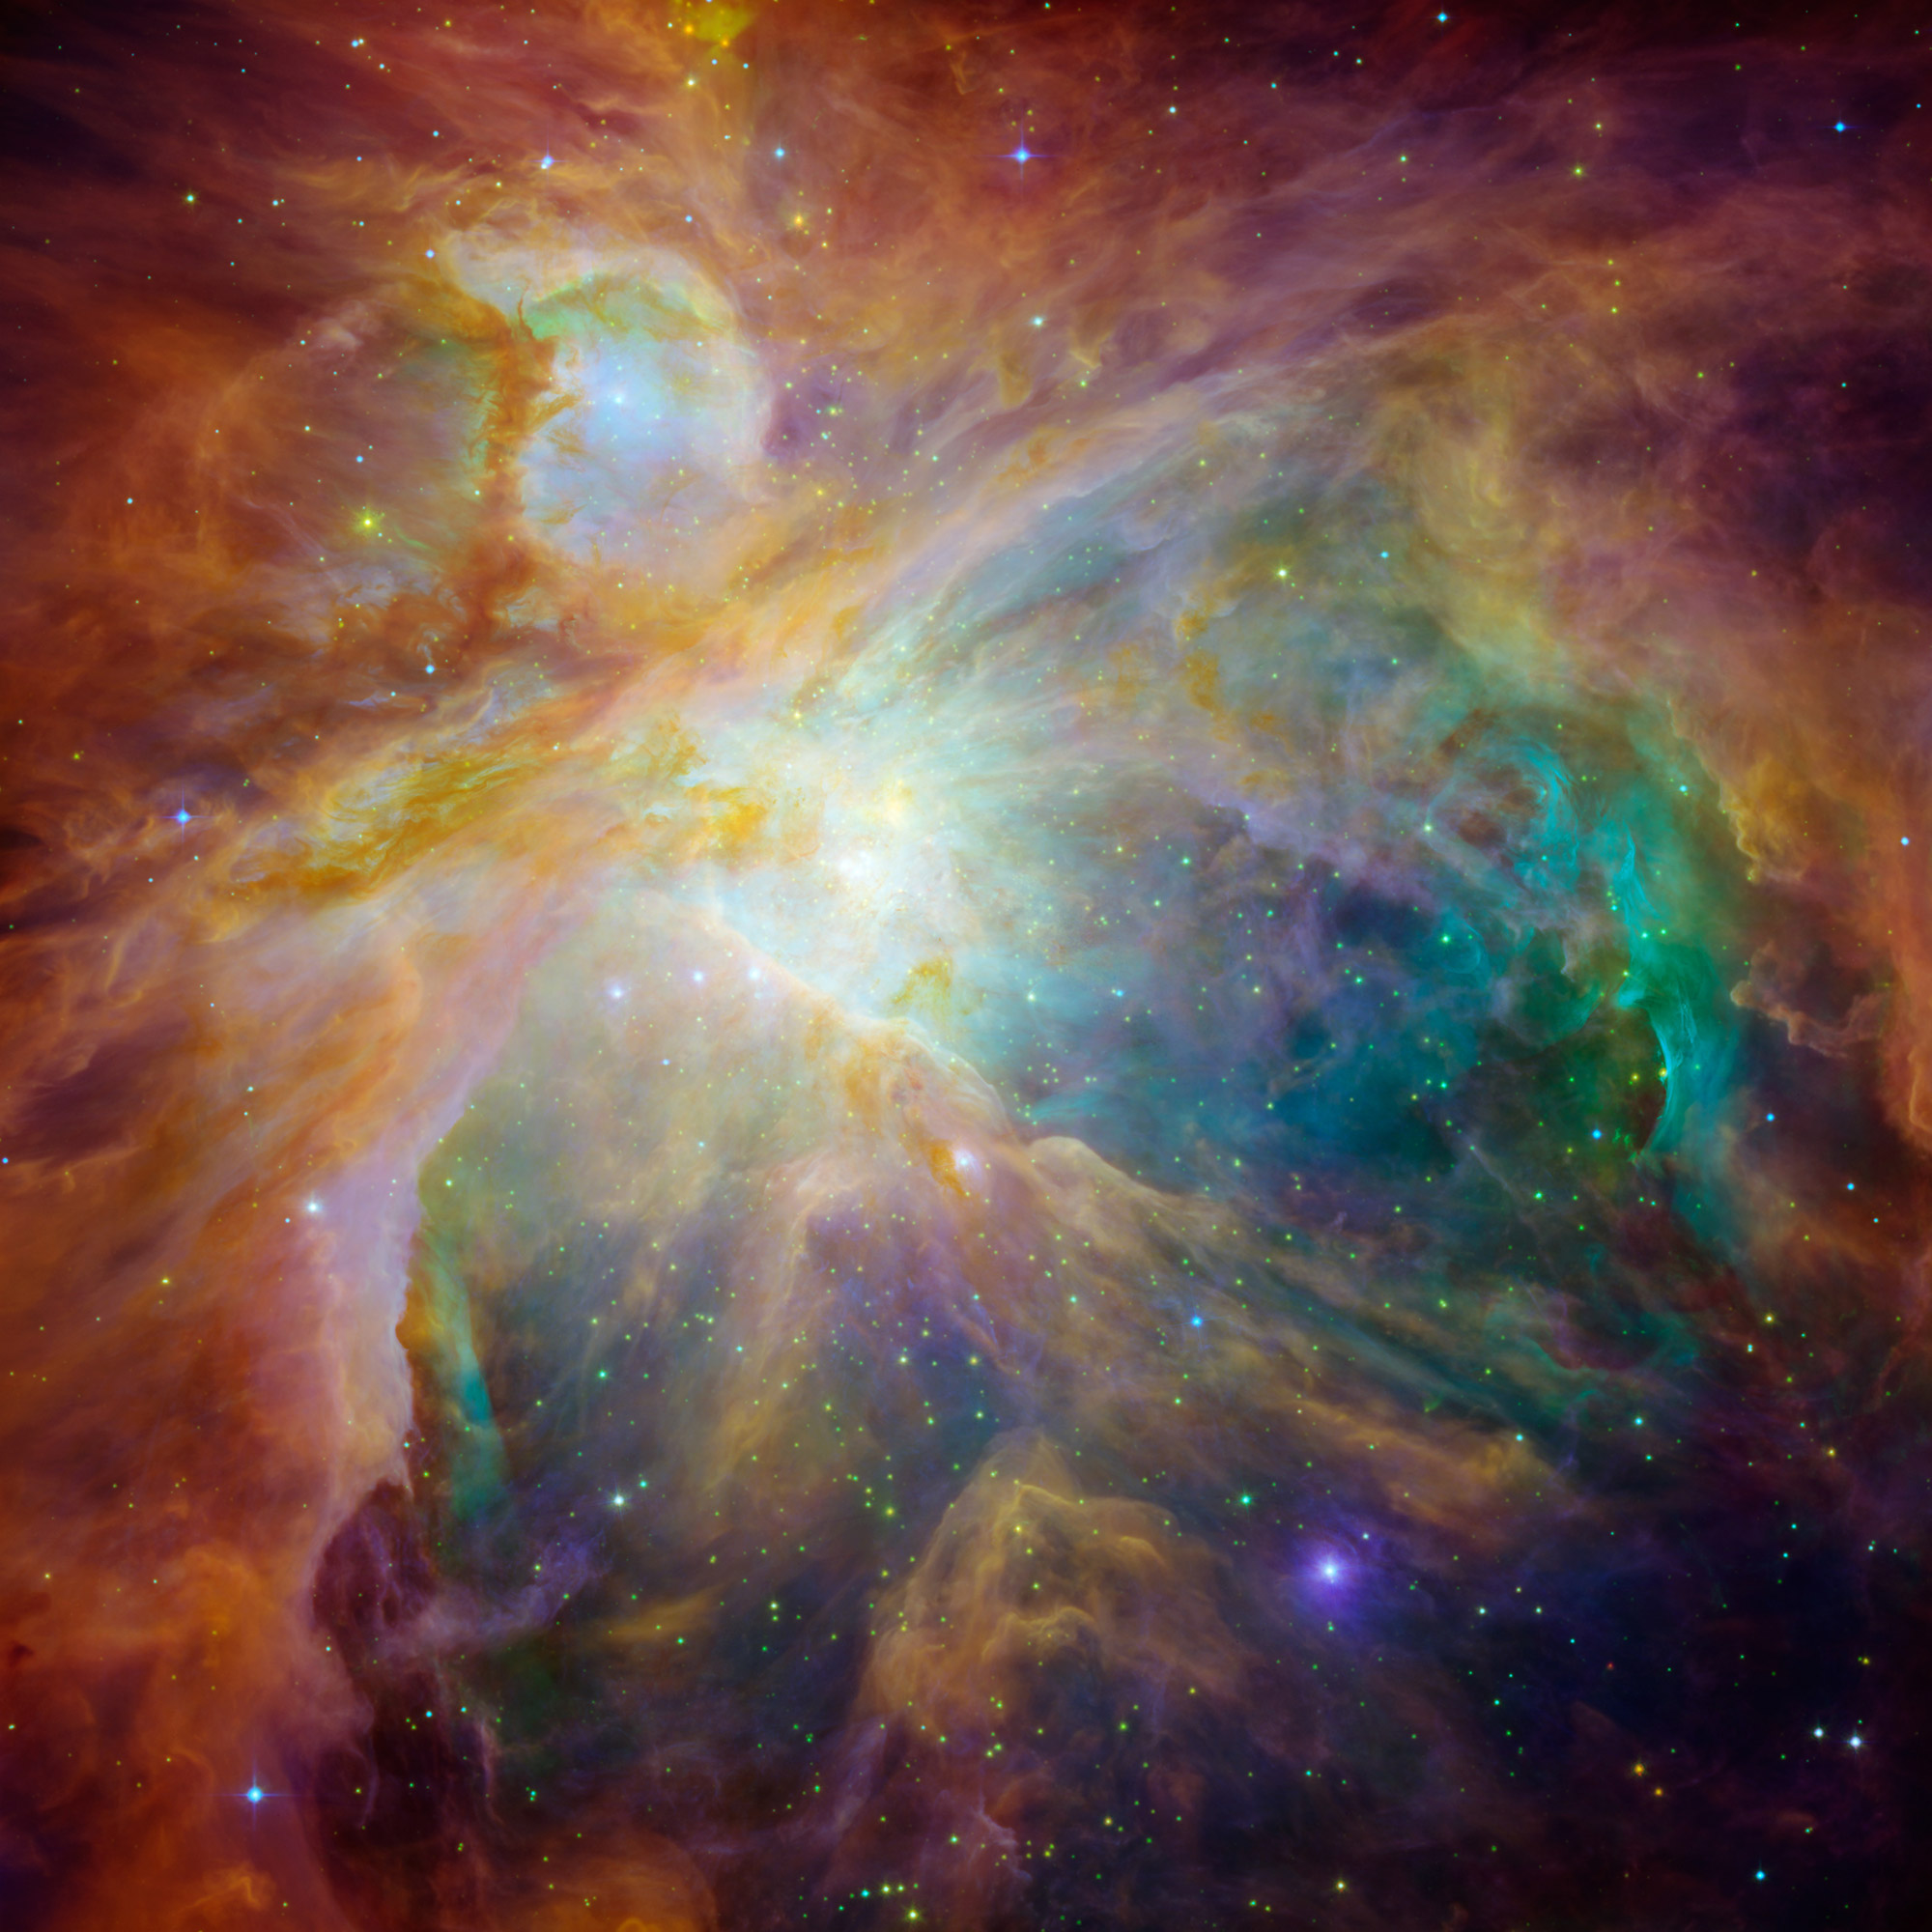 orion-nebula-hubble